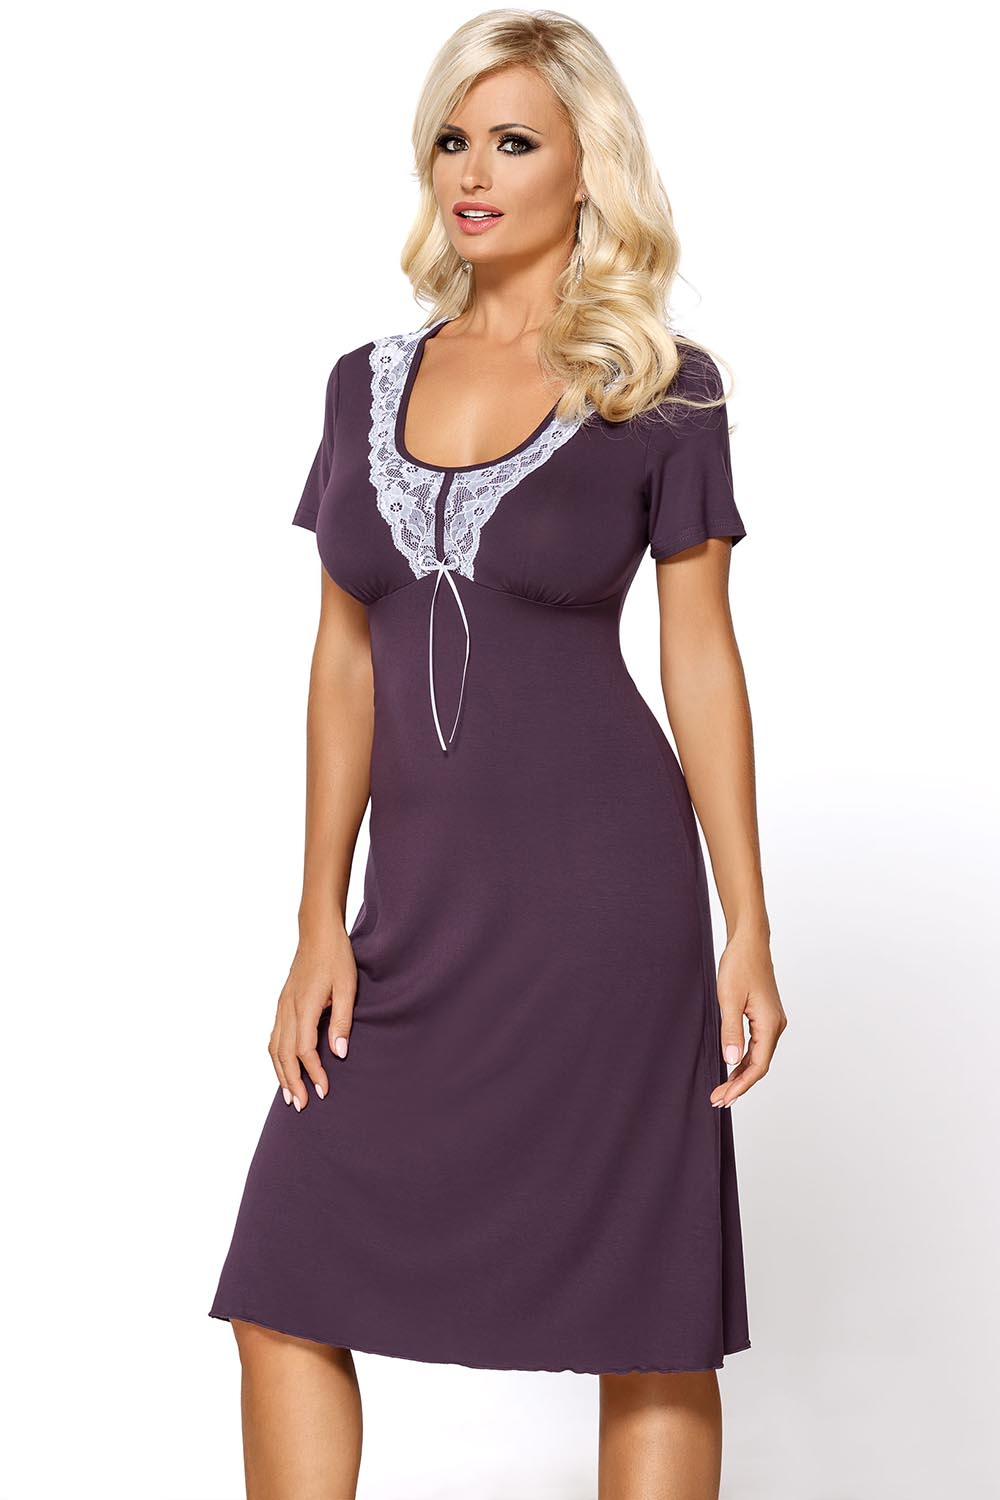 Vivisence Livia 2006 women s nightdress lace short sleeves smooth round  neck  e28a3b8d3